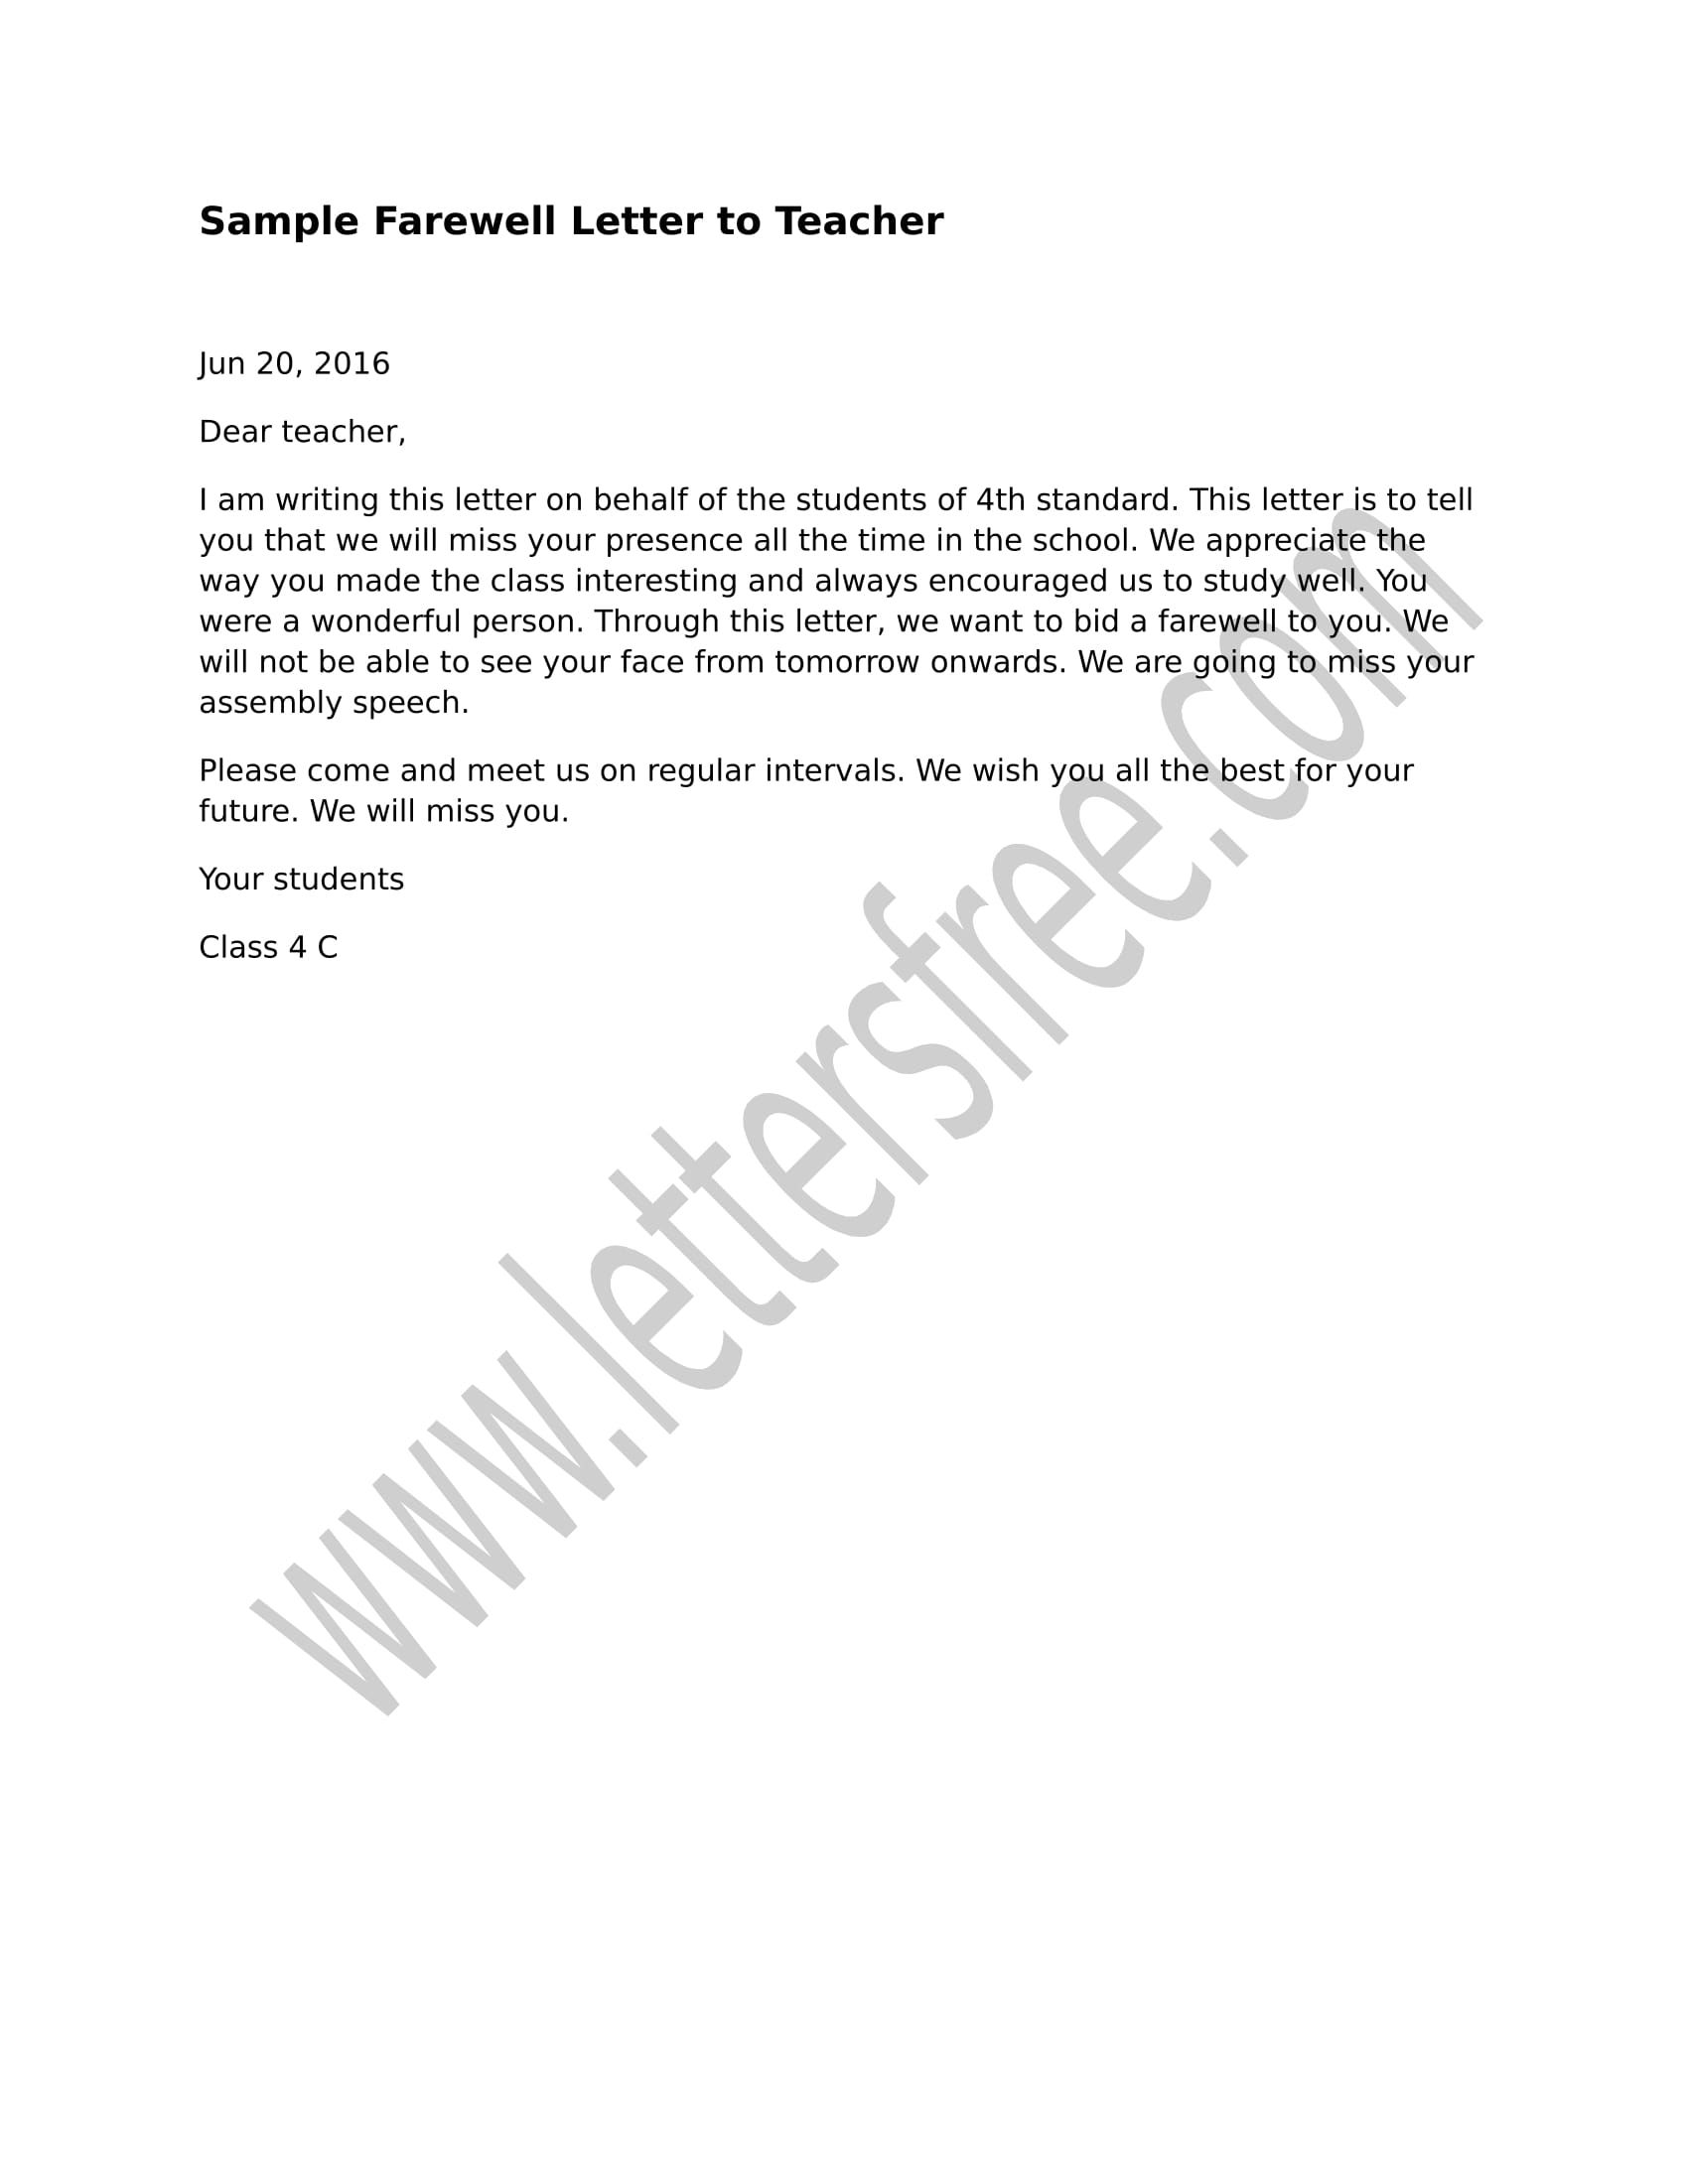 Farewell letter to teacher teacher farewell letter to teacher free letters expocarfo